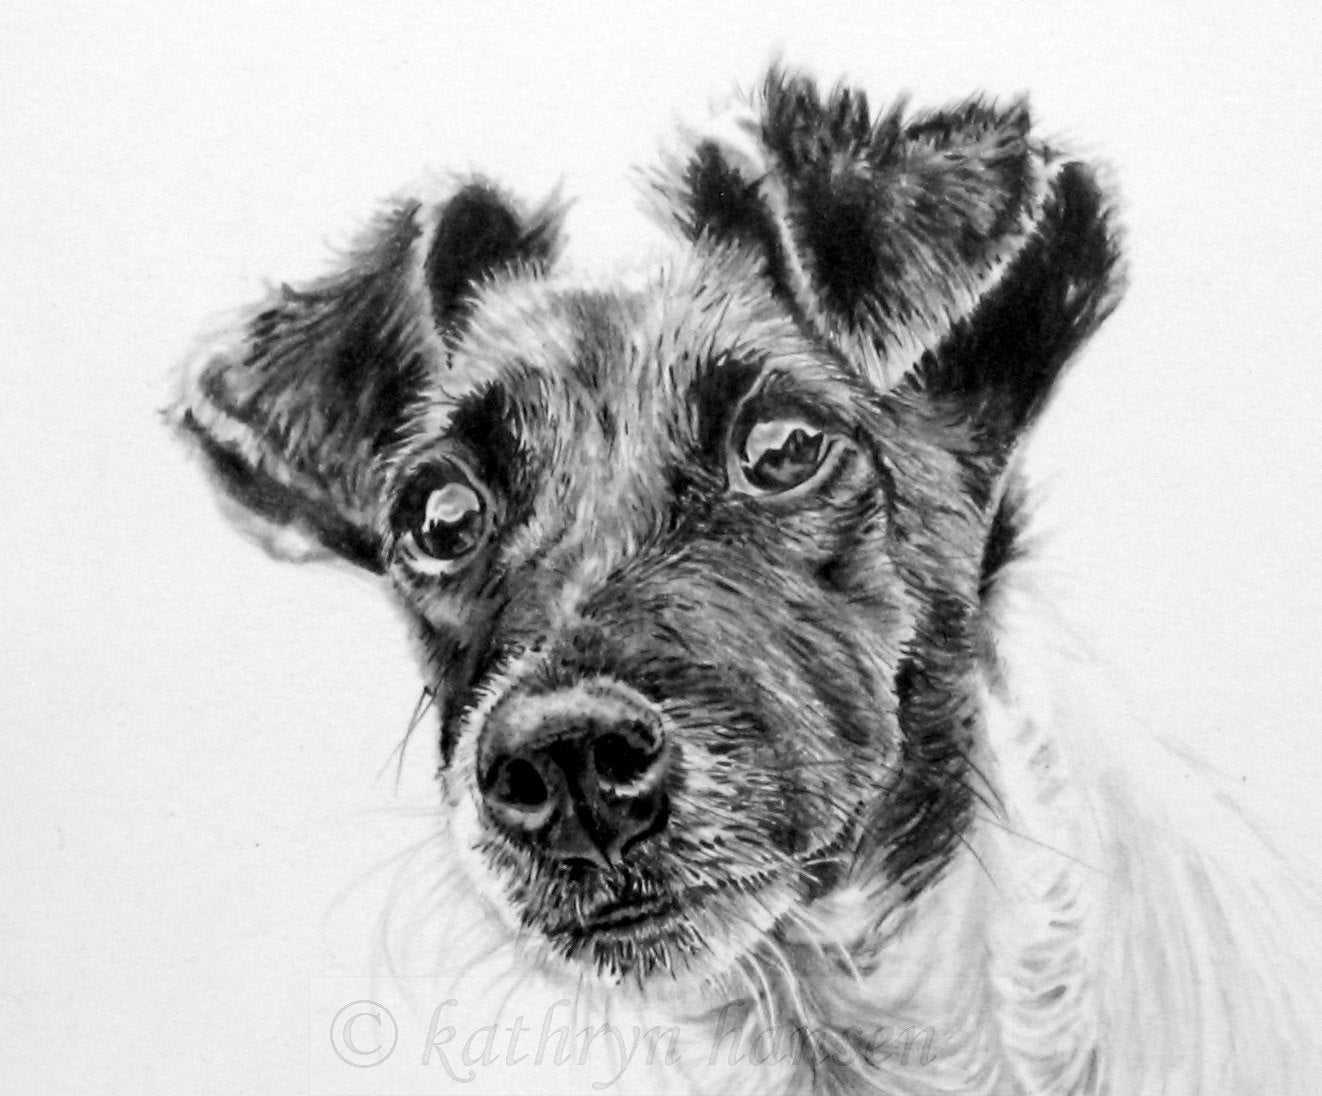 jack russel drawing jack russell terrier rough coat drawing by rachel hames jack russel drawing